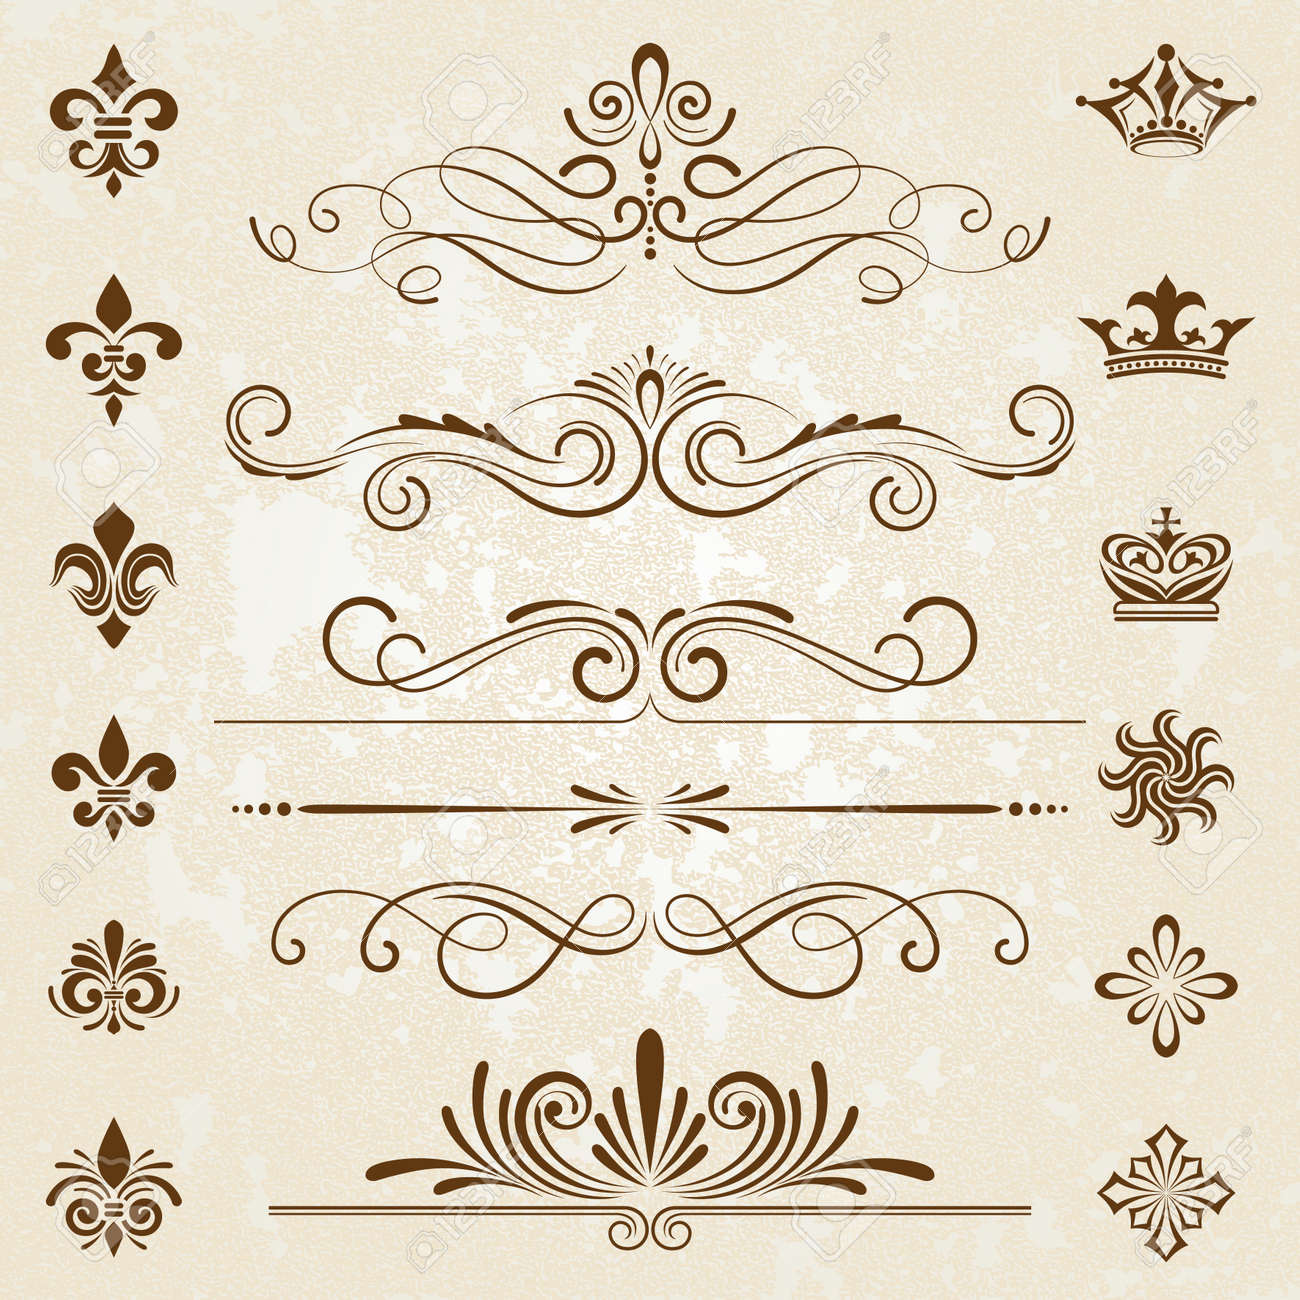 Vintage Decoration Design Elements With Page Decor Stock Vector   22066203